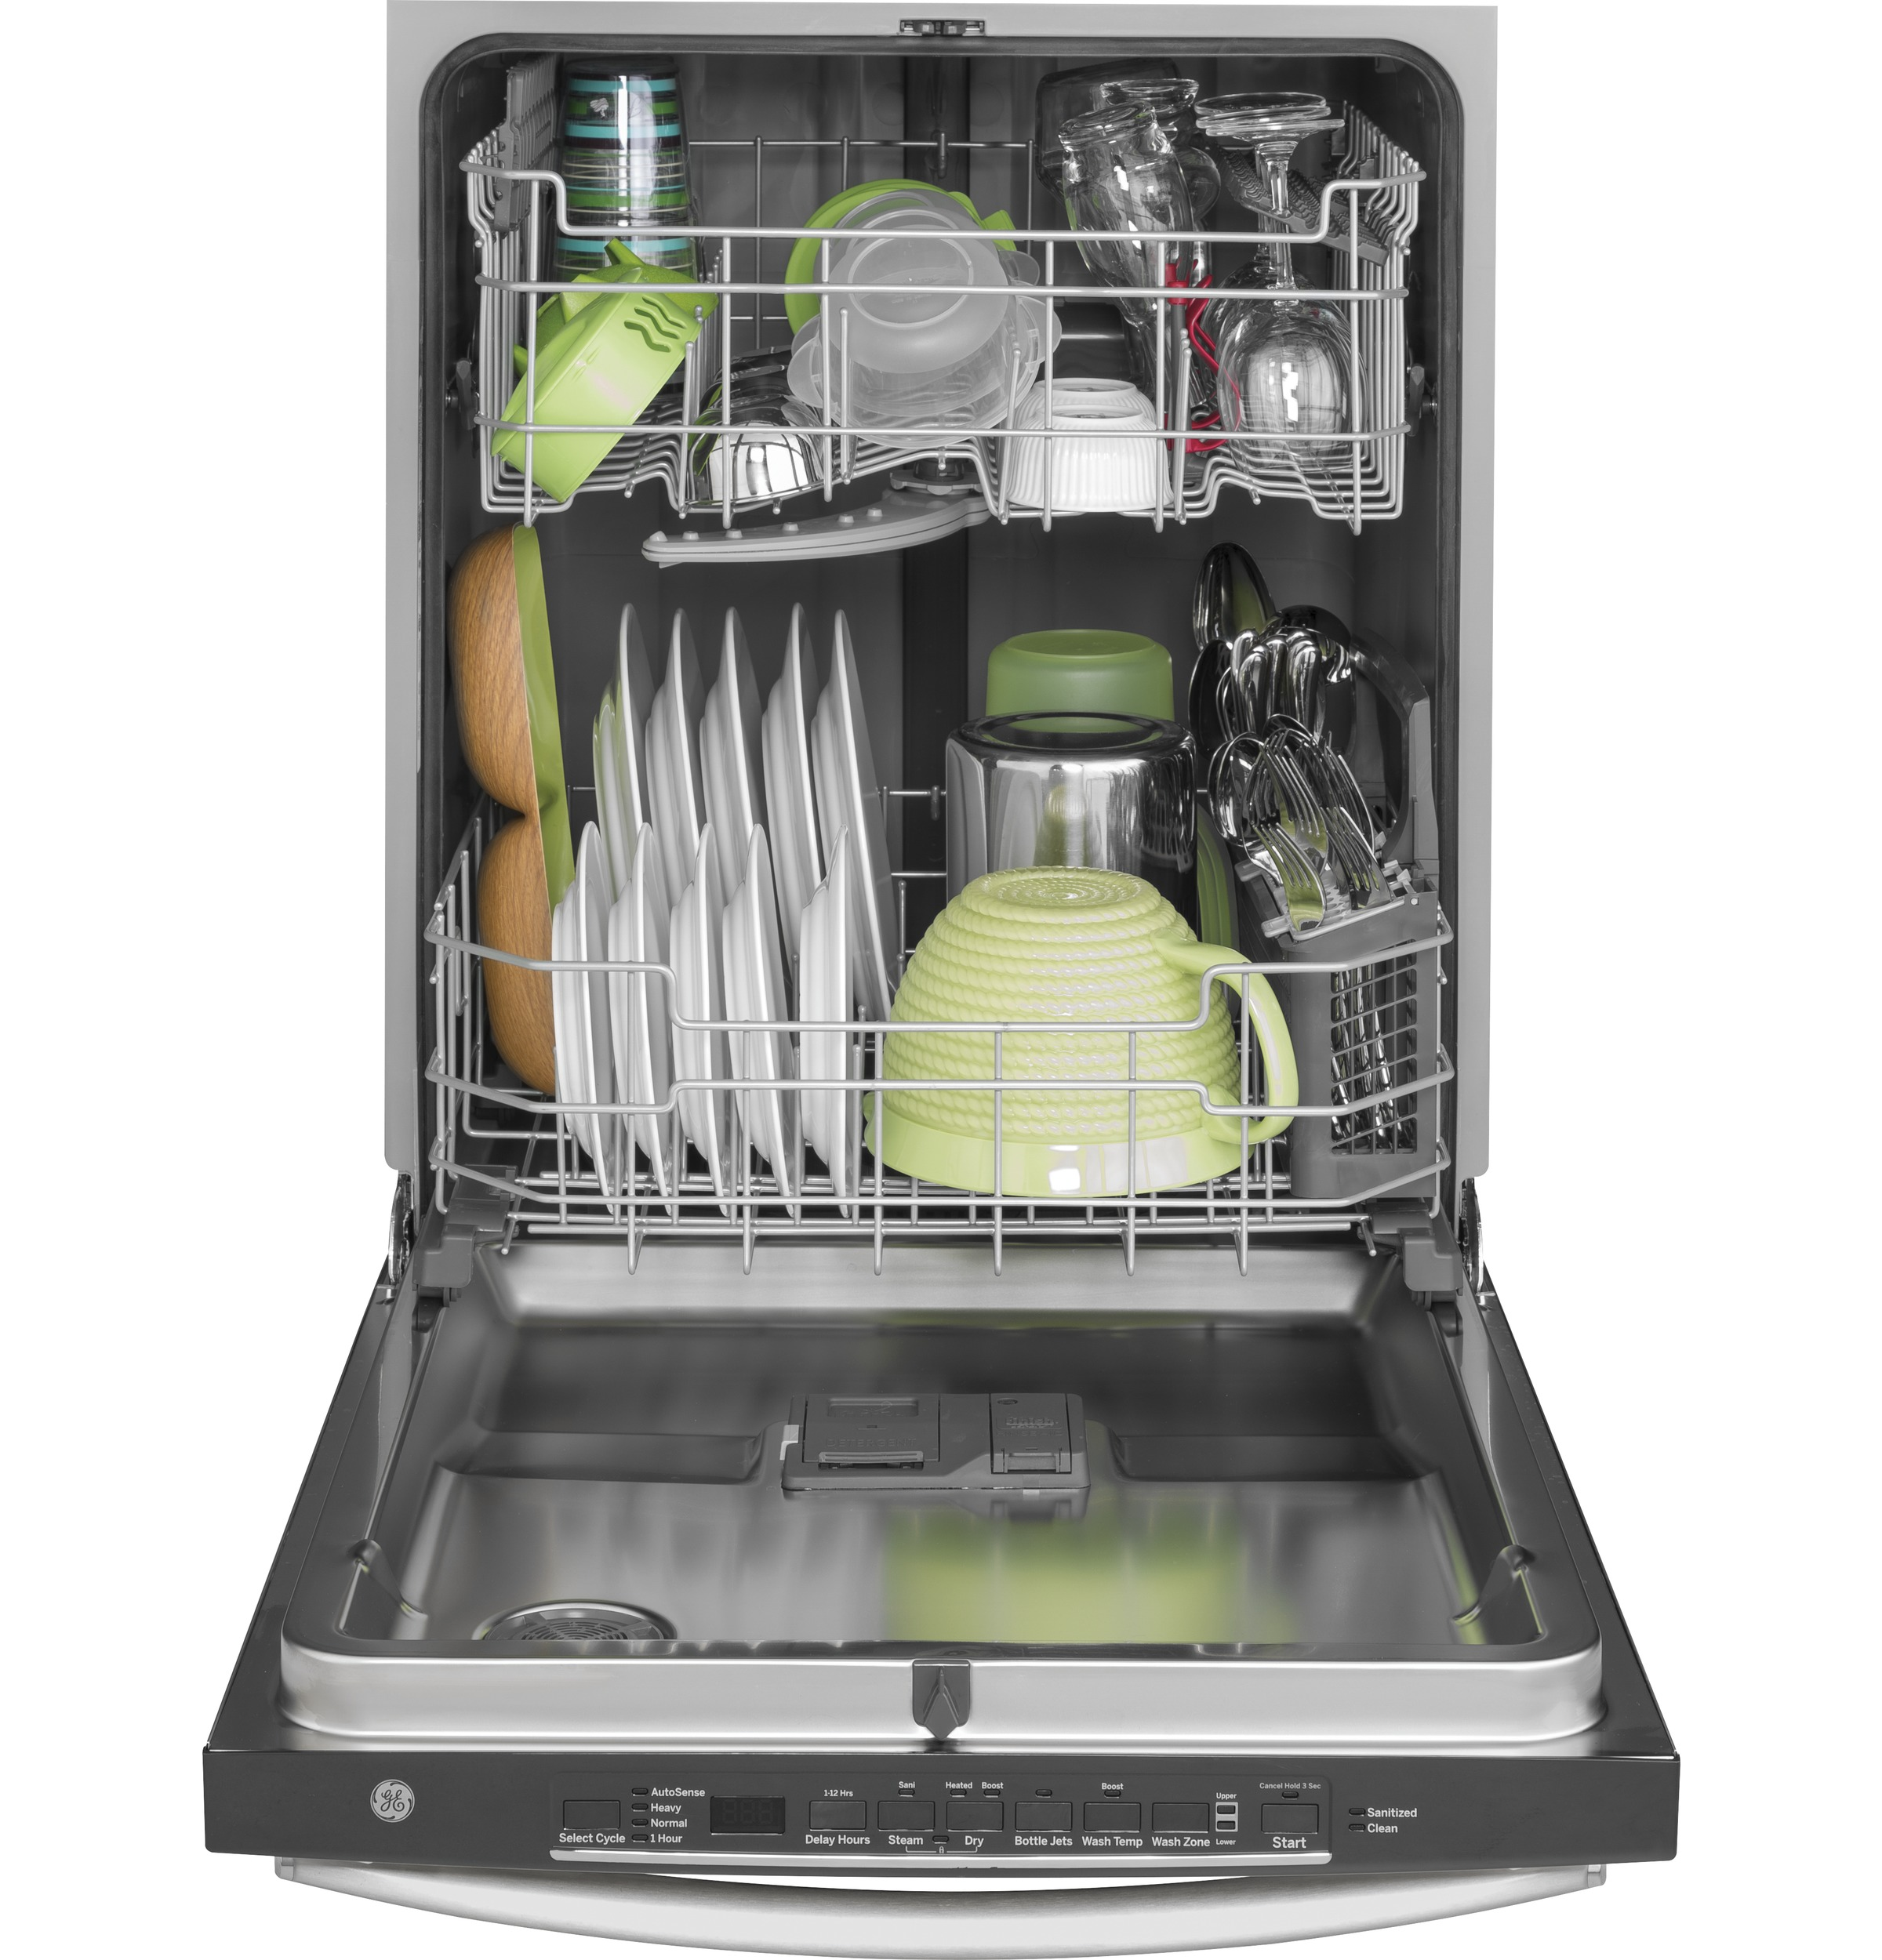 Ge Gdt635hsmss Hybrid Stainless Steel Interior Dishwasher With Hidden Controls